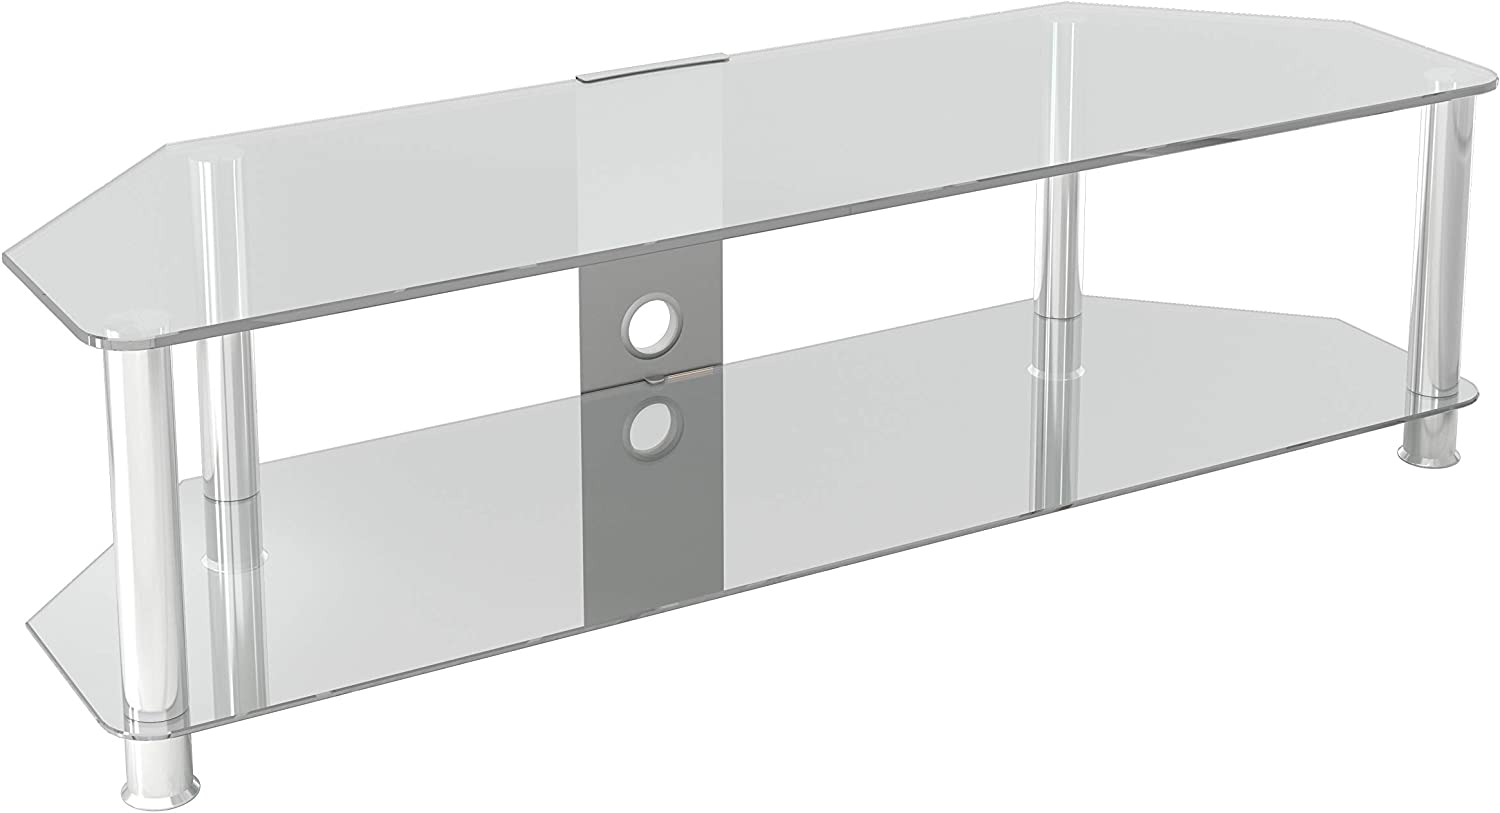 Mahara Clear Glass Max 80% OFF TV Stand Regular dealer - 140cm TVs up to for 65